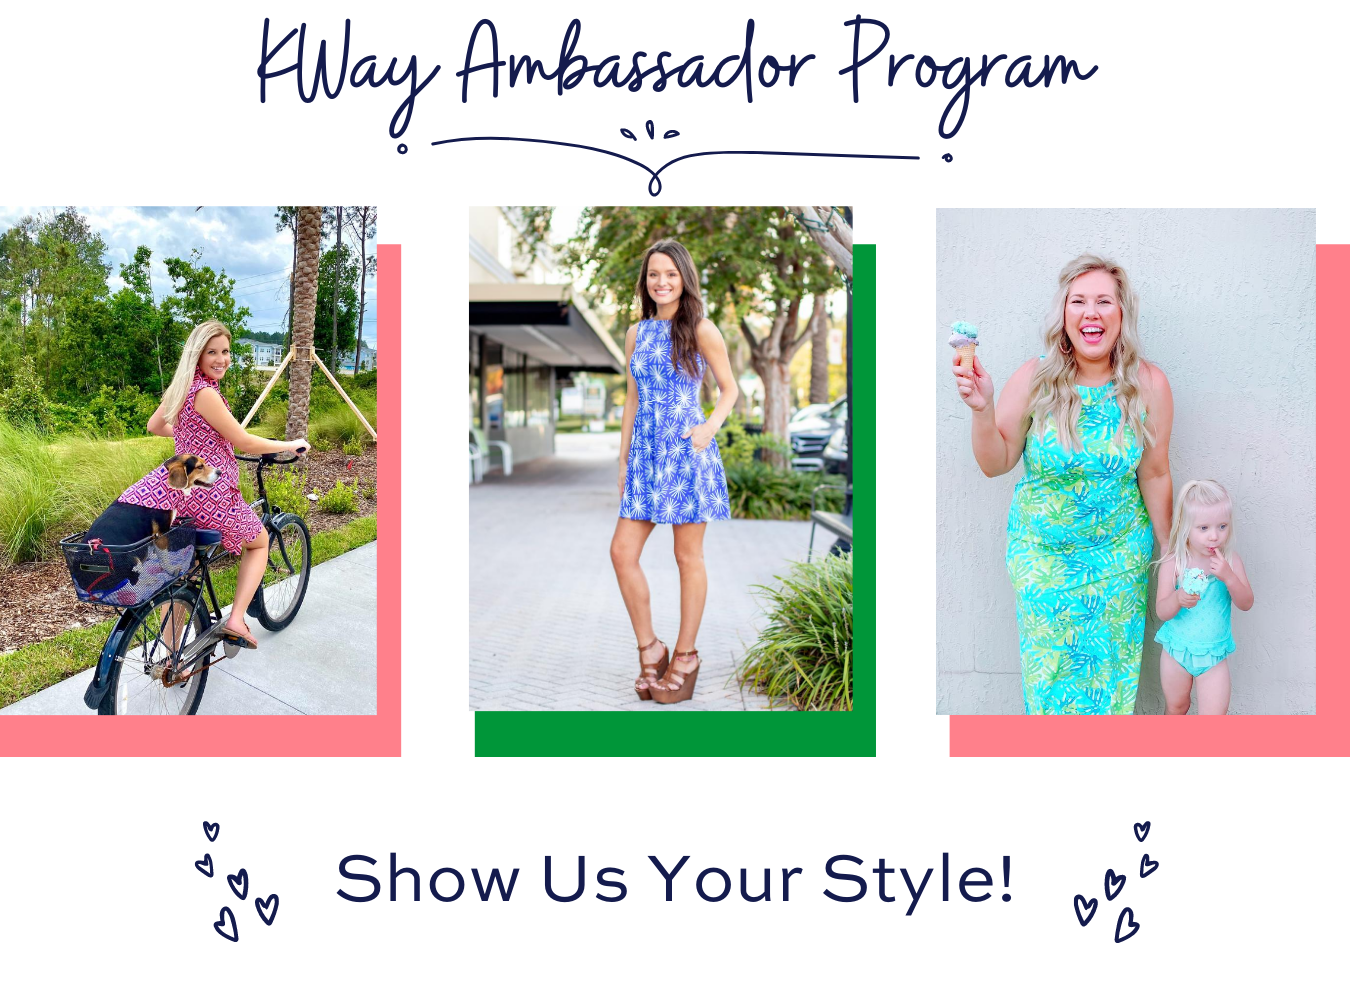 Katherine Way Ambassador Program Sign Up